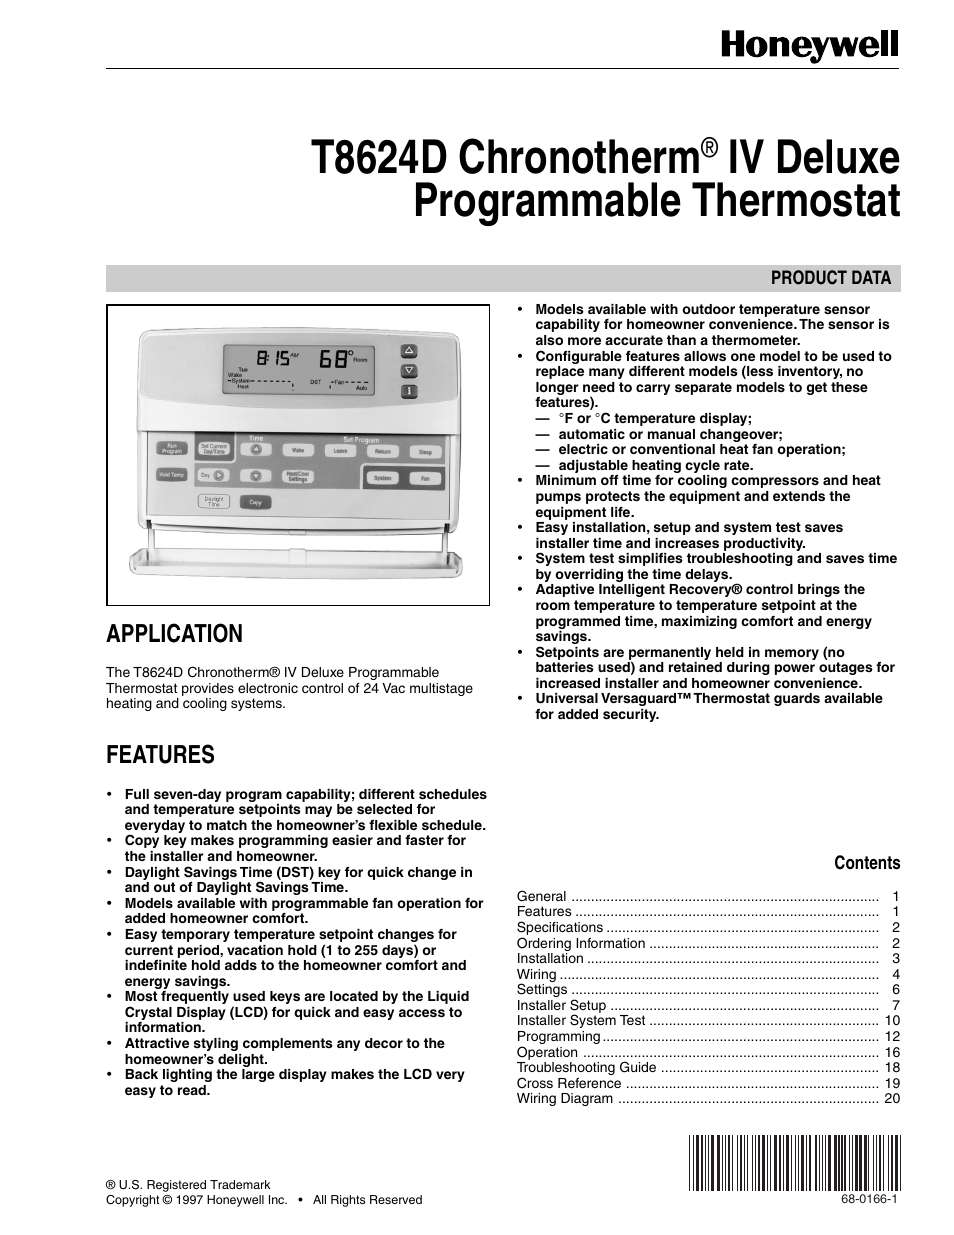 Honeywell Chronotherm Instruction Manual I Open Source User Rth2300 Rth221 Basic Iv Deluxe T8624d 20 Pages Rh Manualsdir Com Thermostat Operating